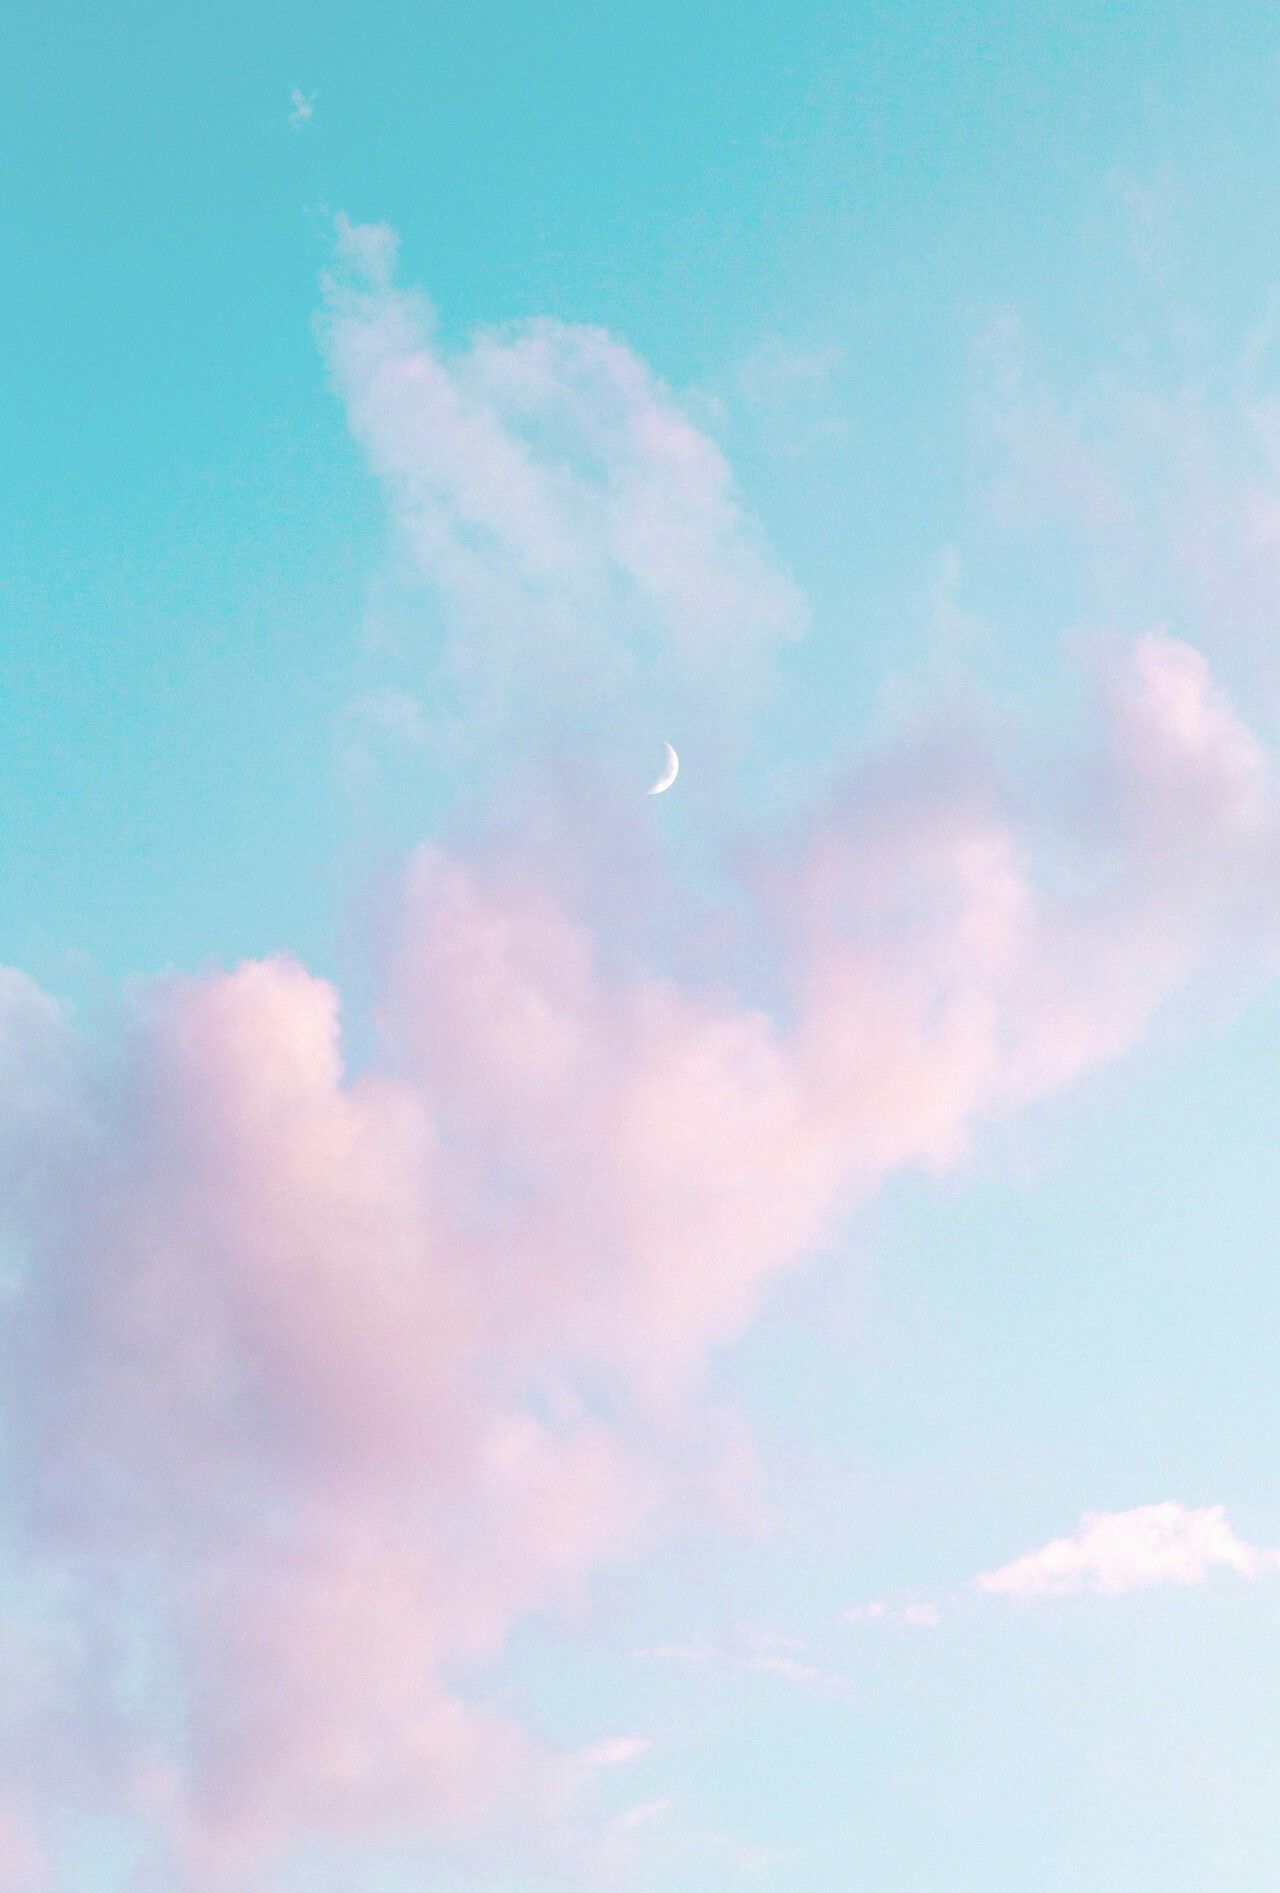 Aesthetic Sky Clouds Wallpapers On Wallpaperdog